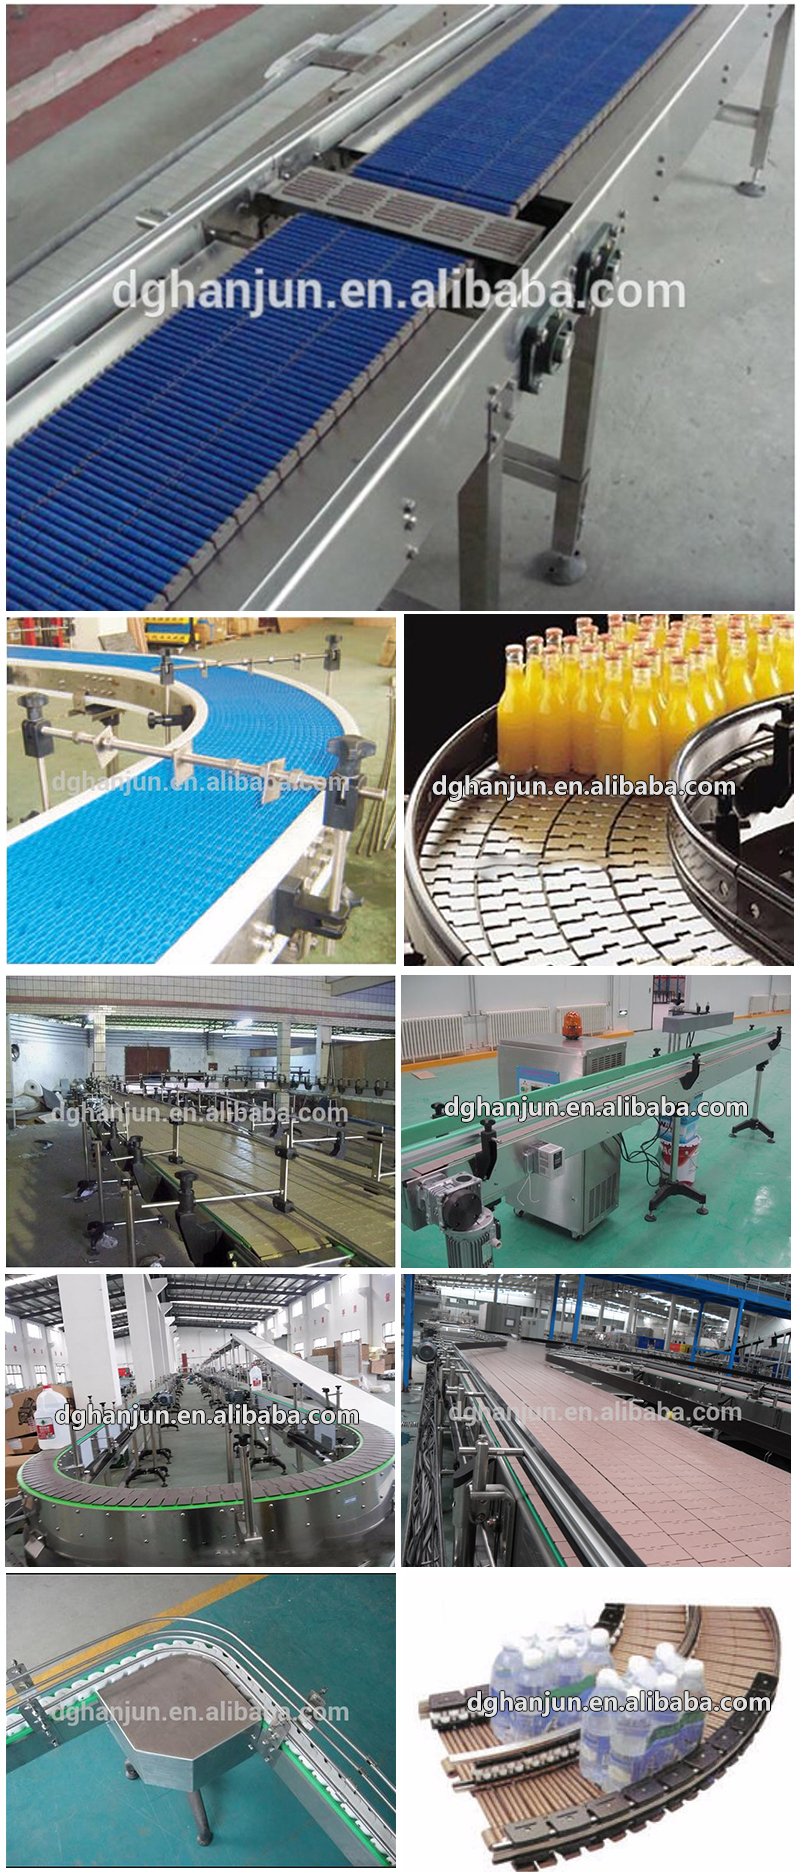 DHP straight running conveyor chain manufacturers manufacturer for food conveyor